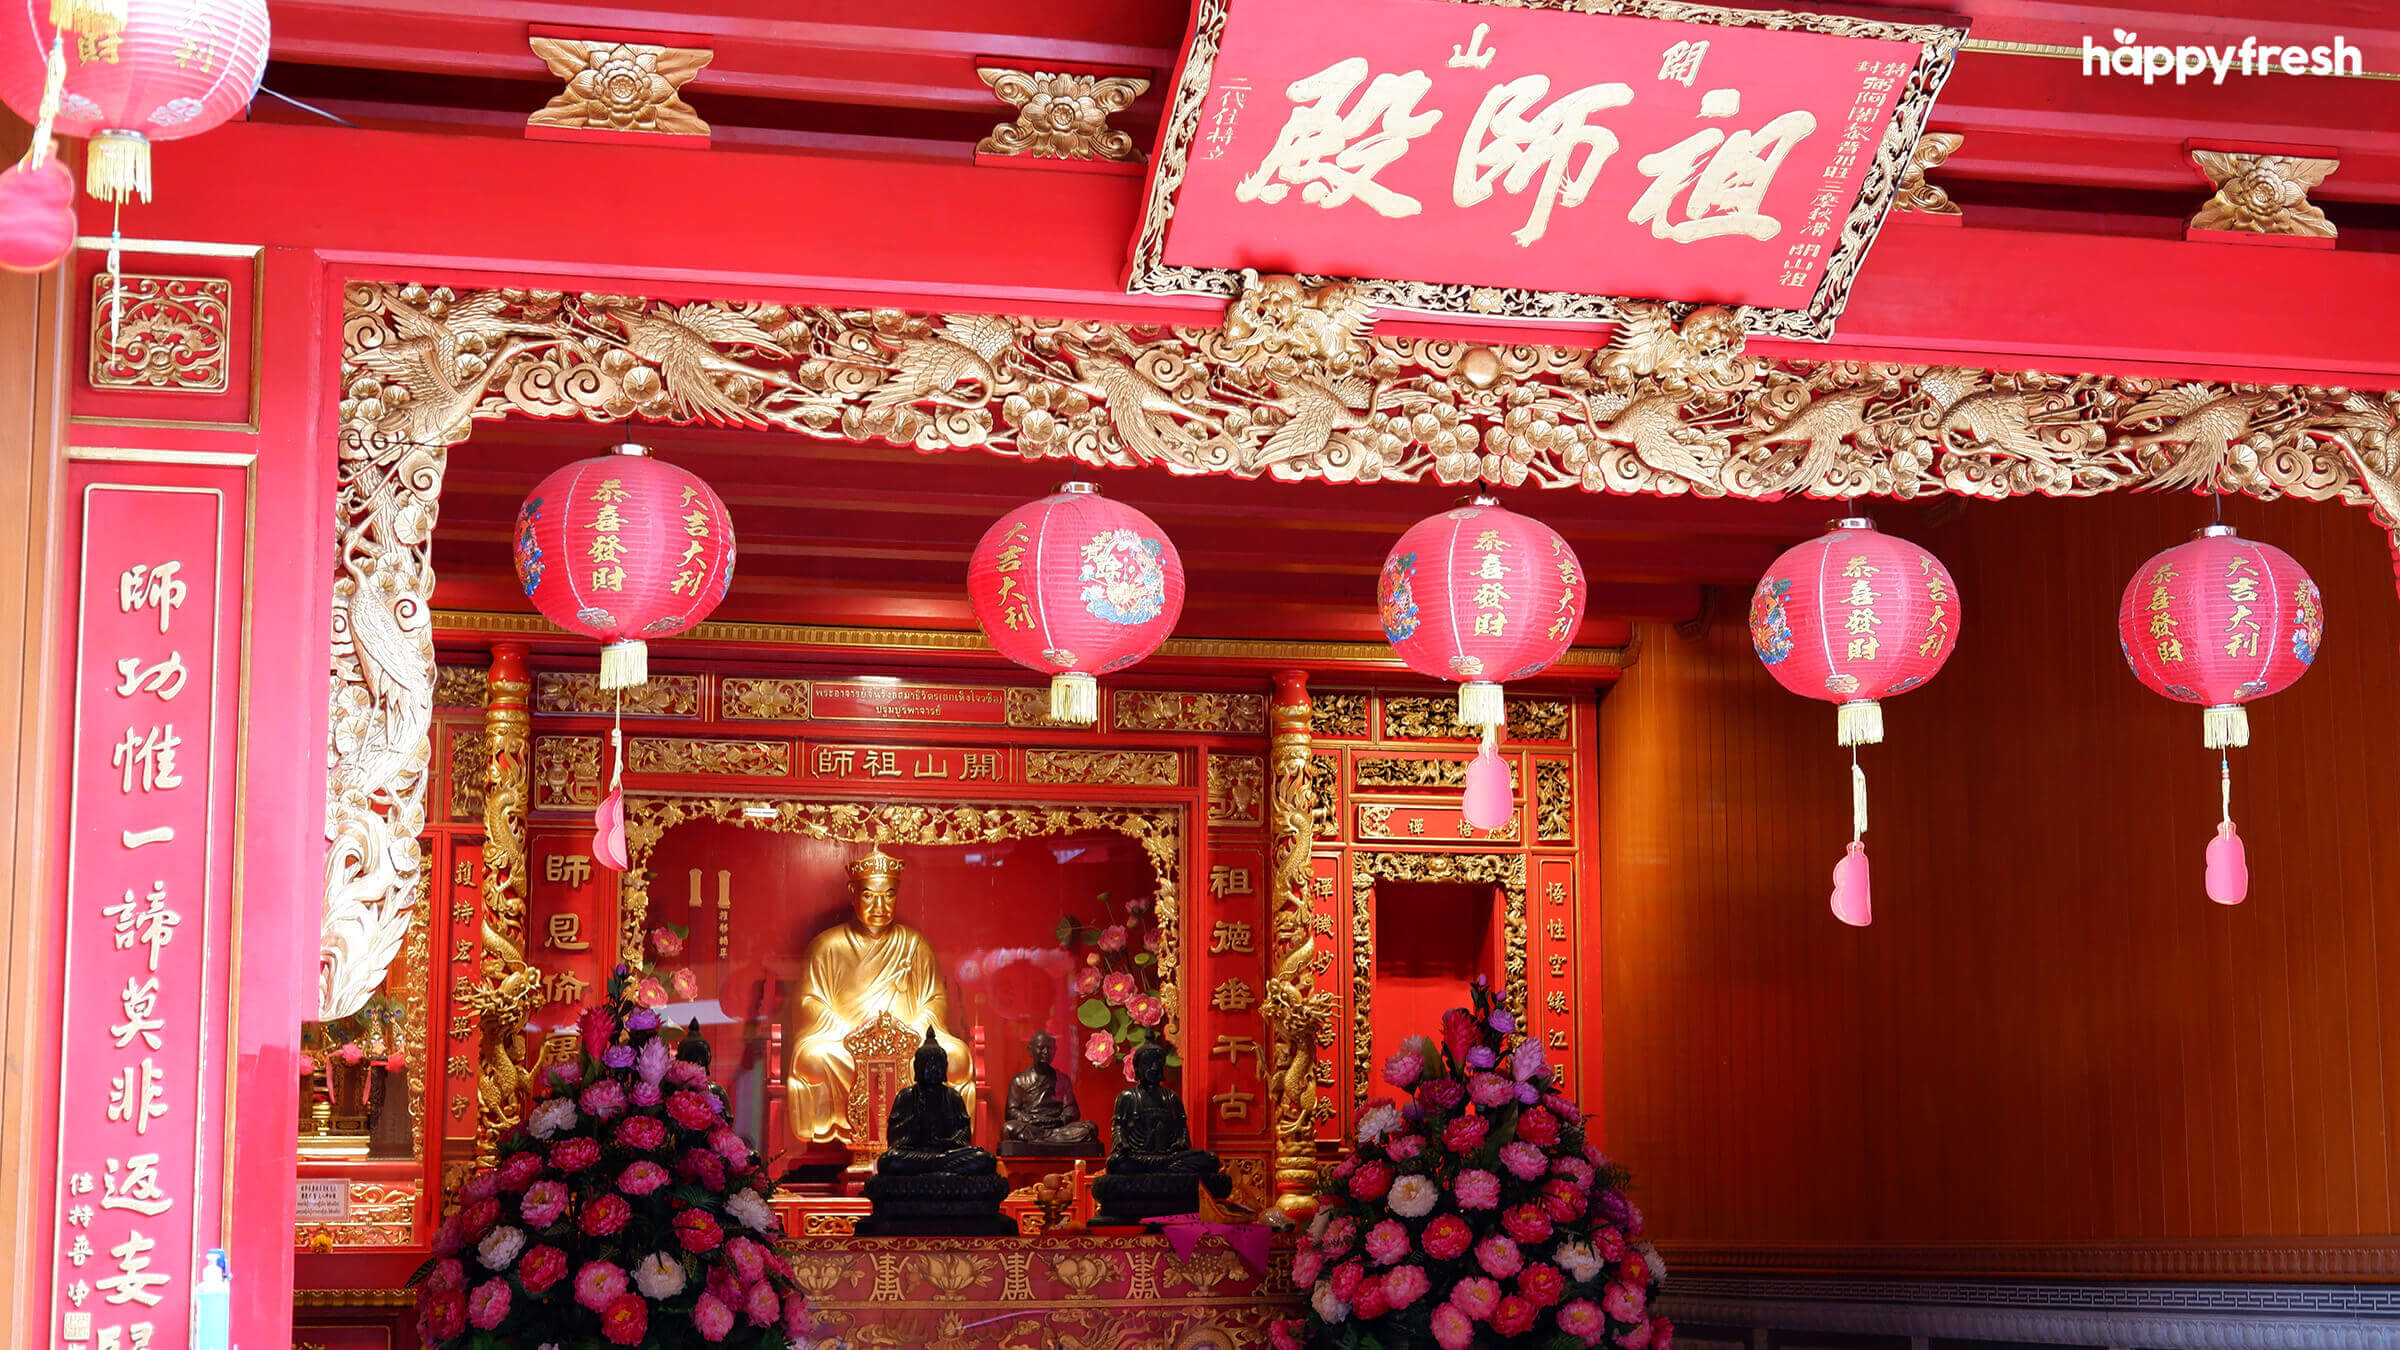 HappyFresh_Visit_6_Chinese_Shrines_In_Chinatown_Wat_Mangkon_2